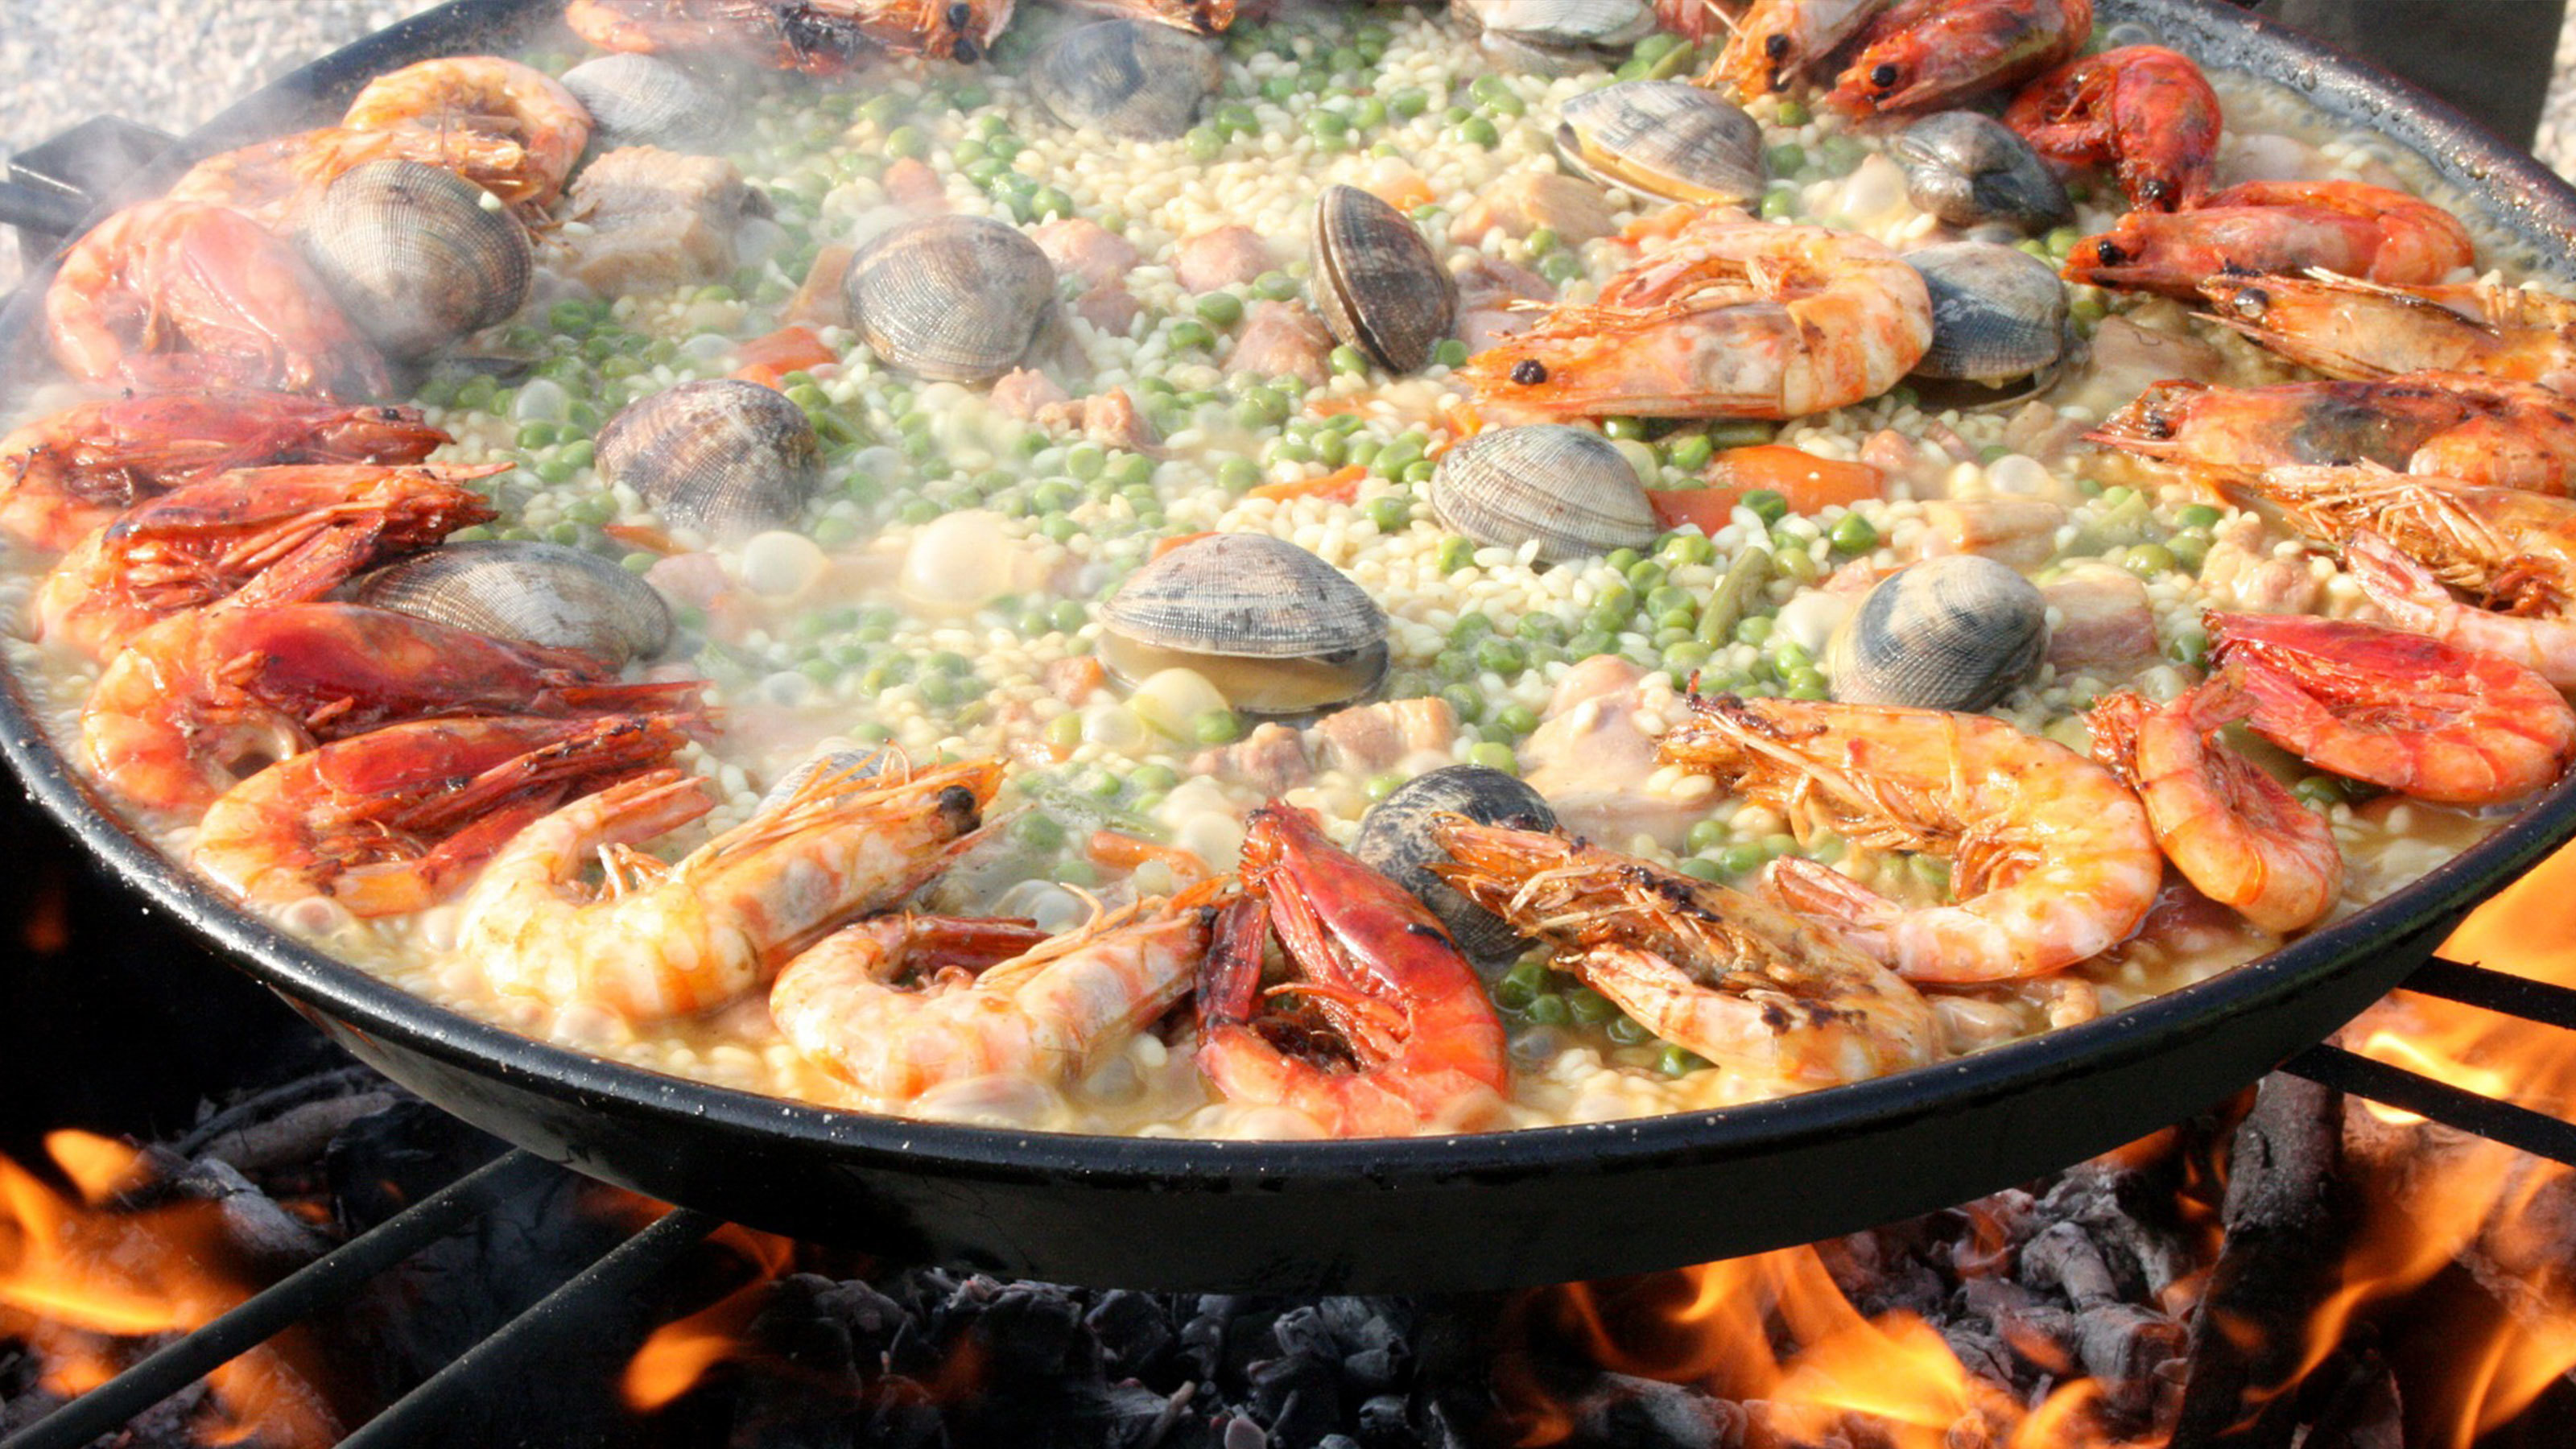 Seafood-paella-cooking-on-an-open-flame